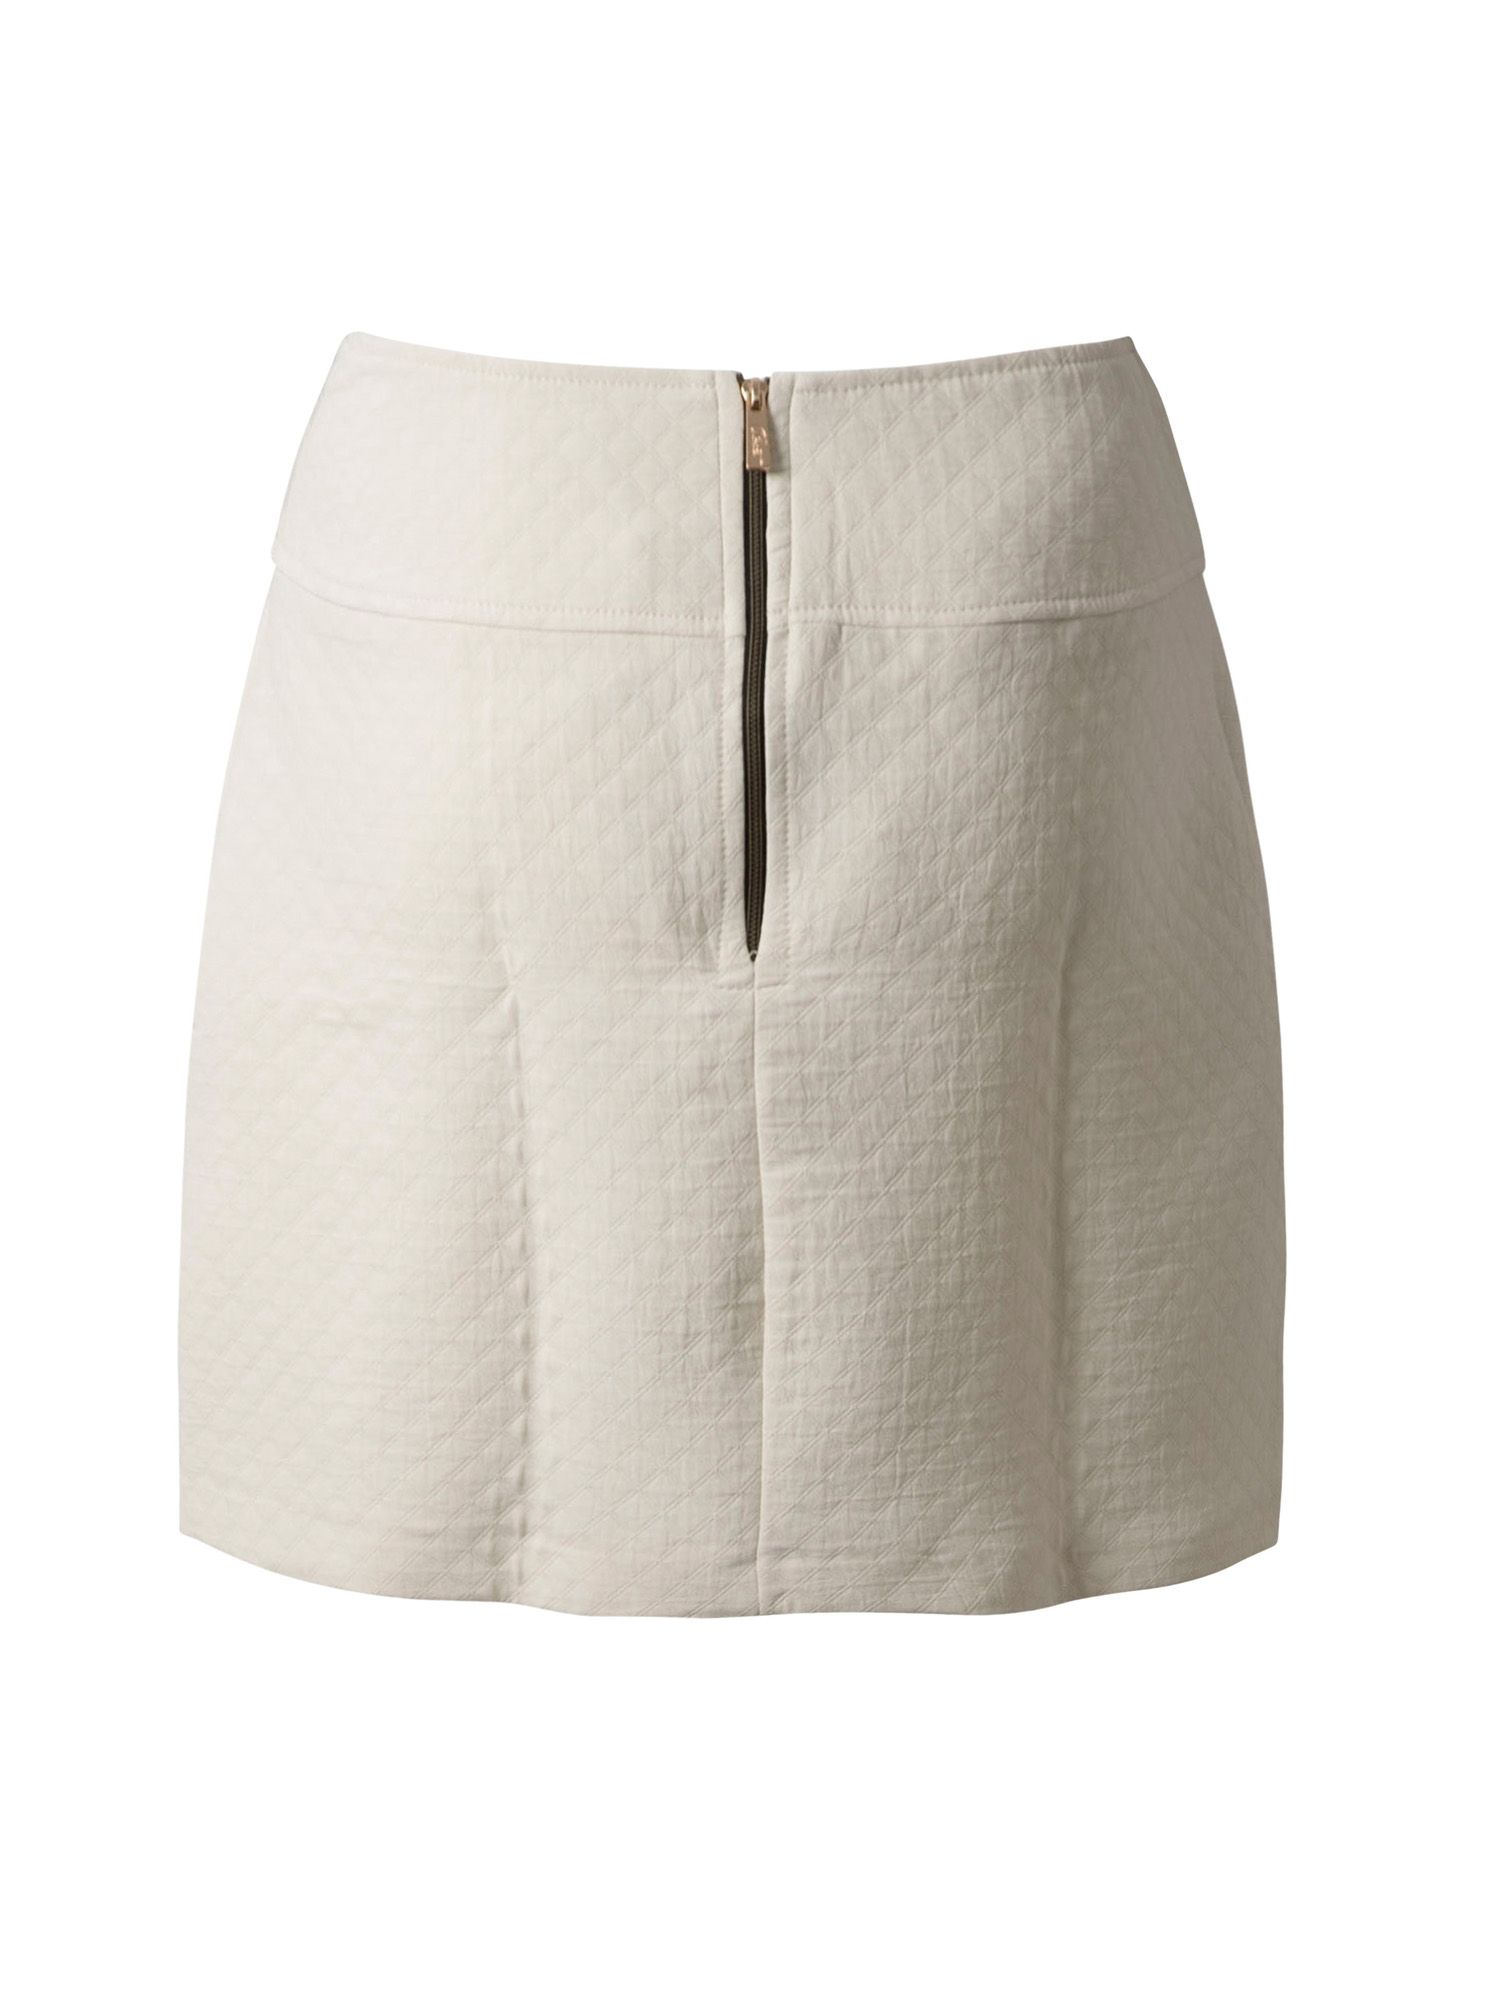 Quilted zip skirt